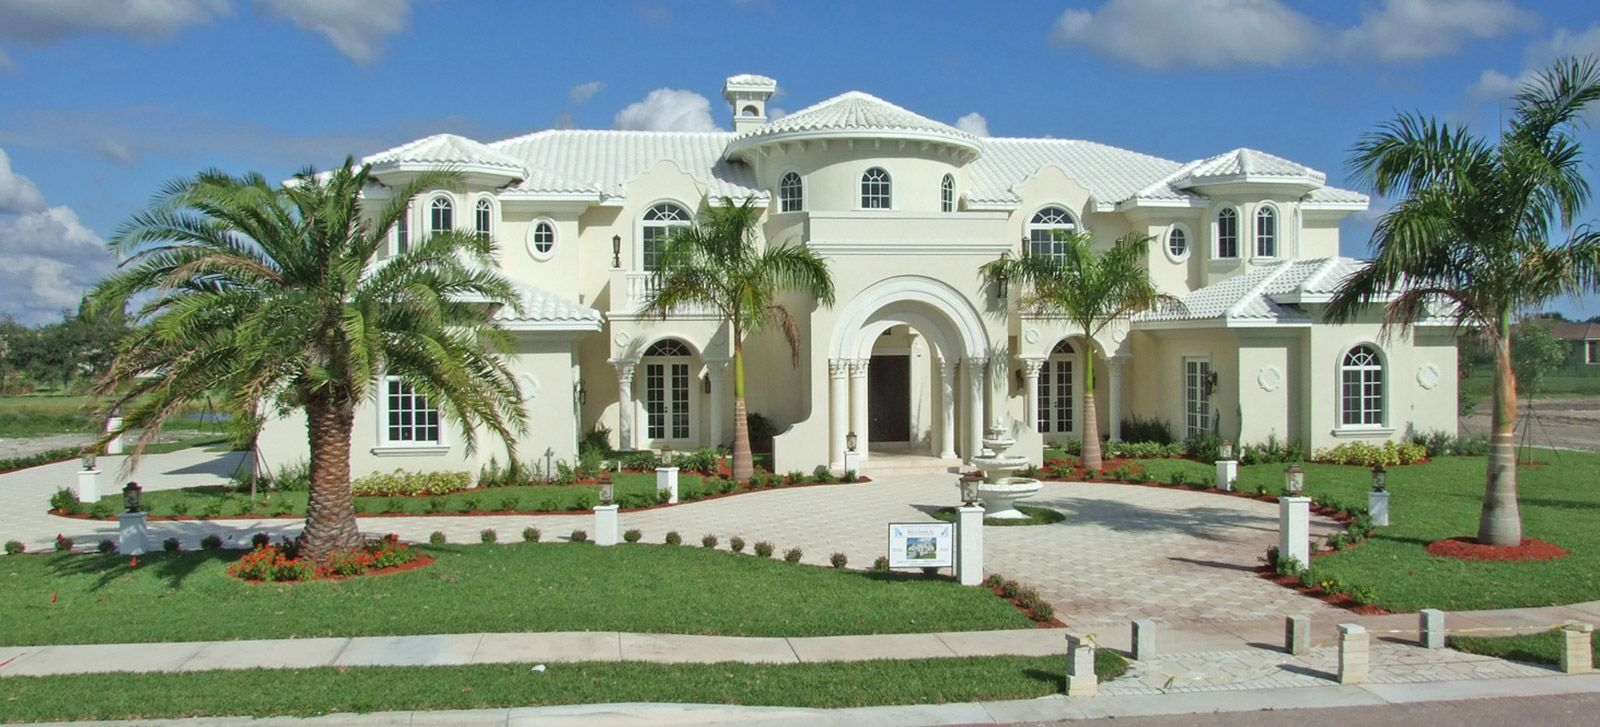 Mansion Luxury home Luxury home